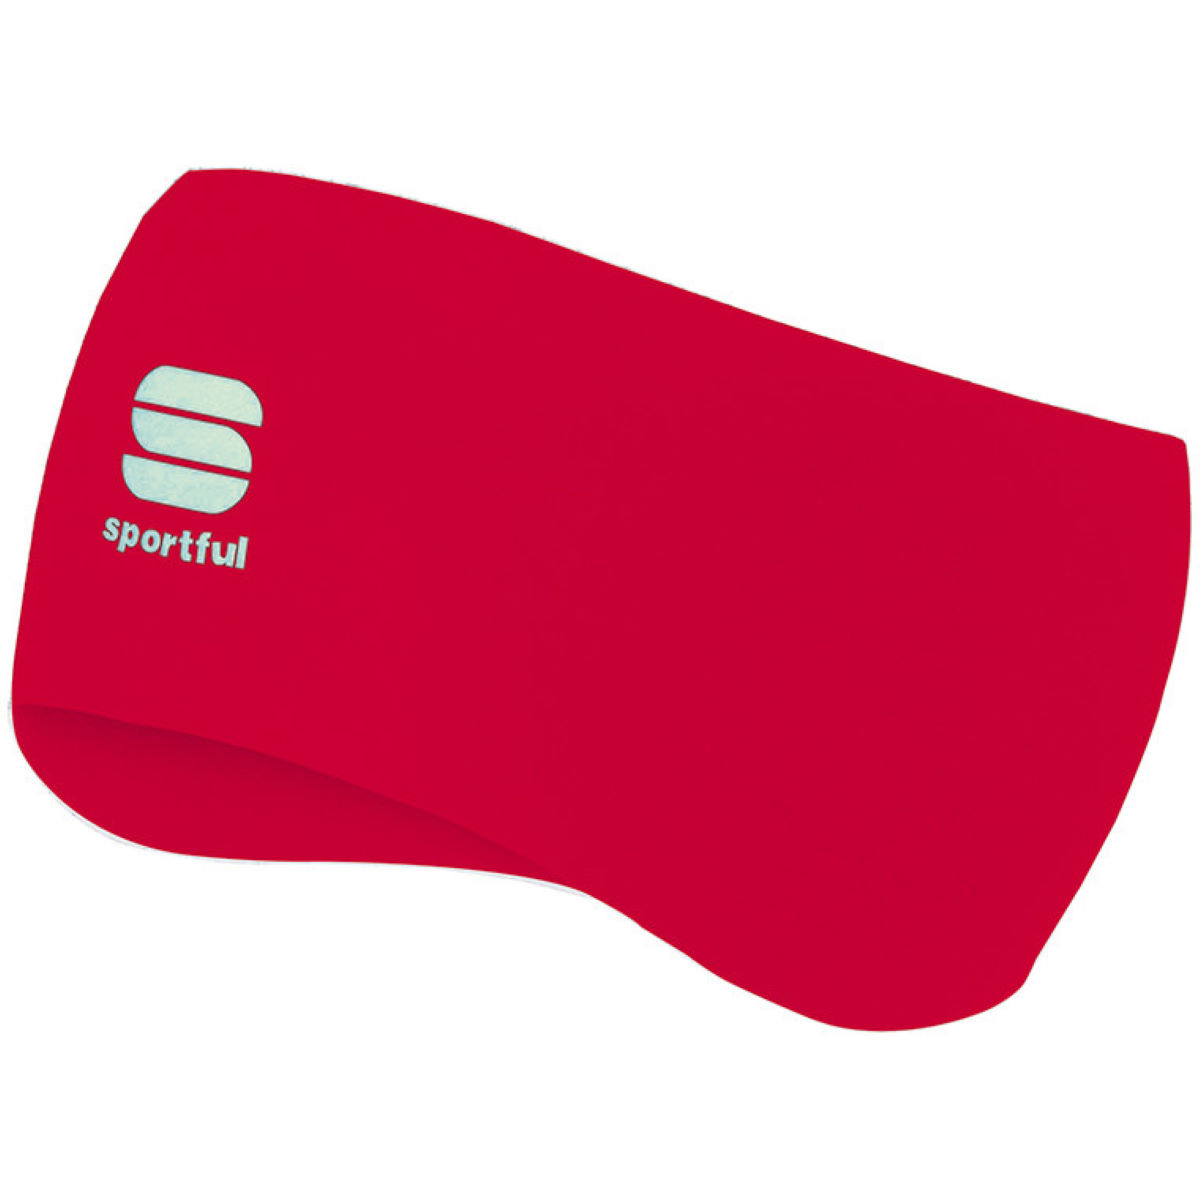 Bandeau Sportful Edge - Taille unique Rouge